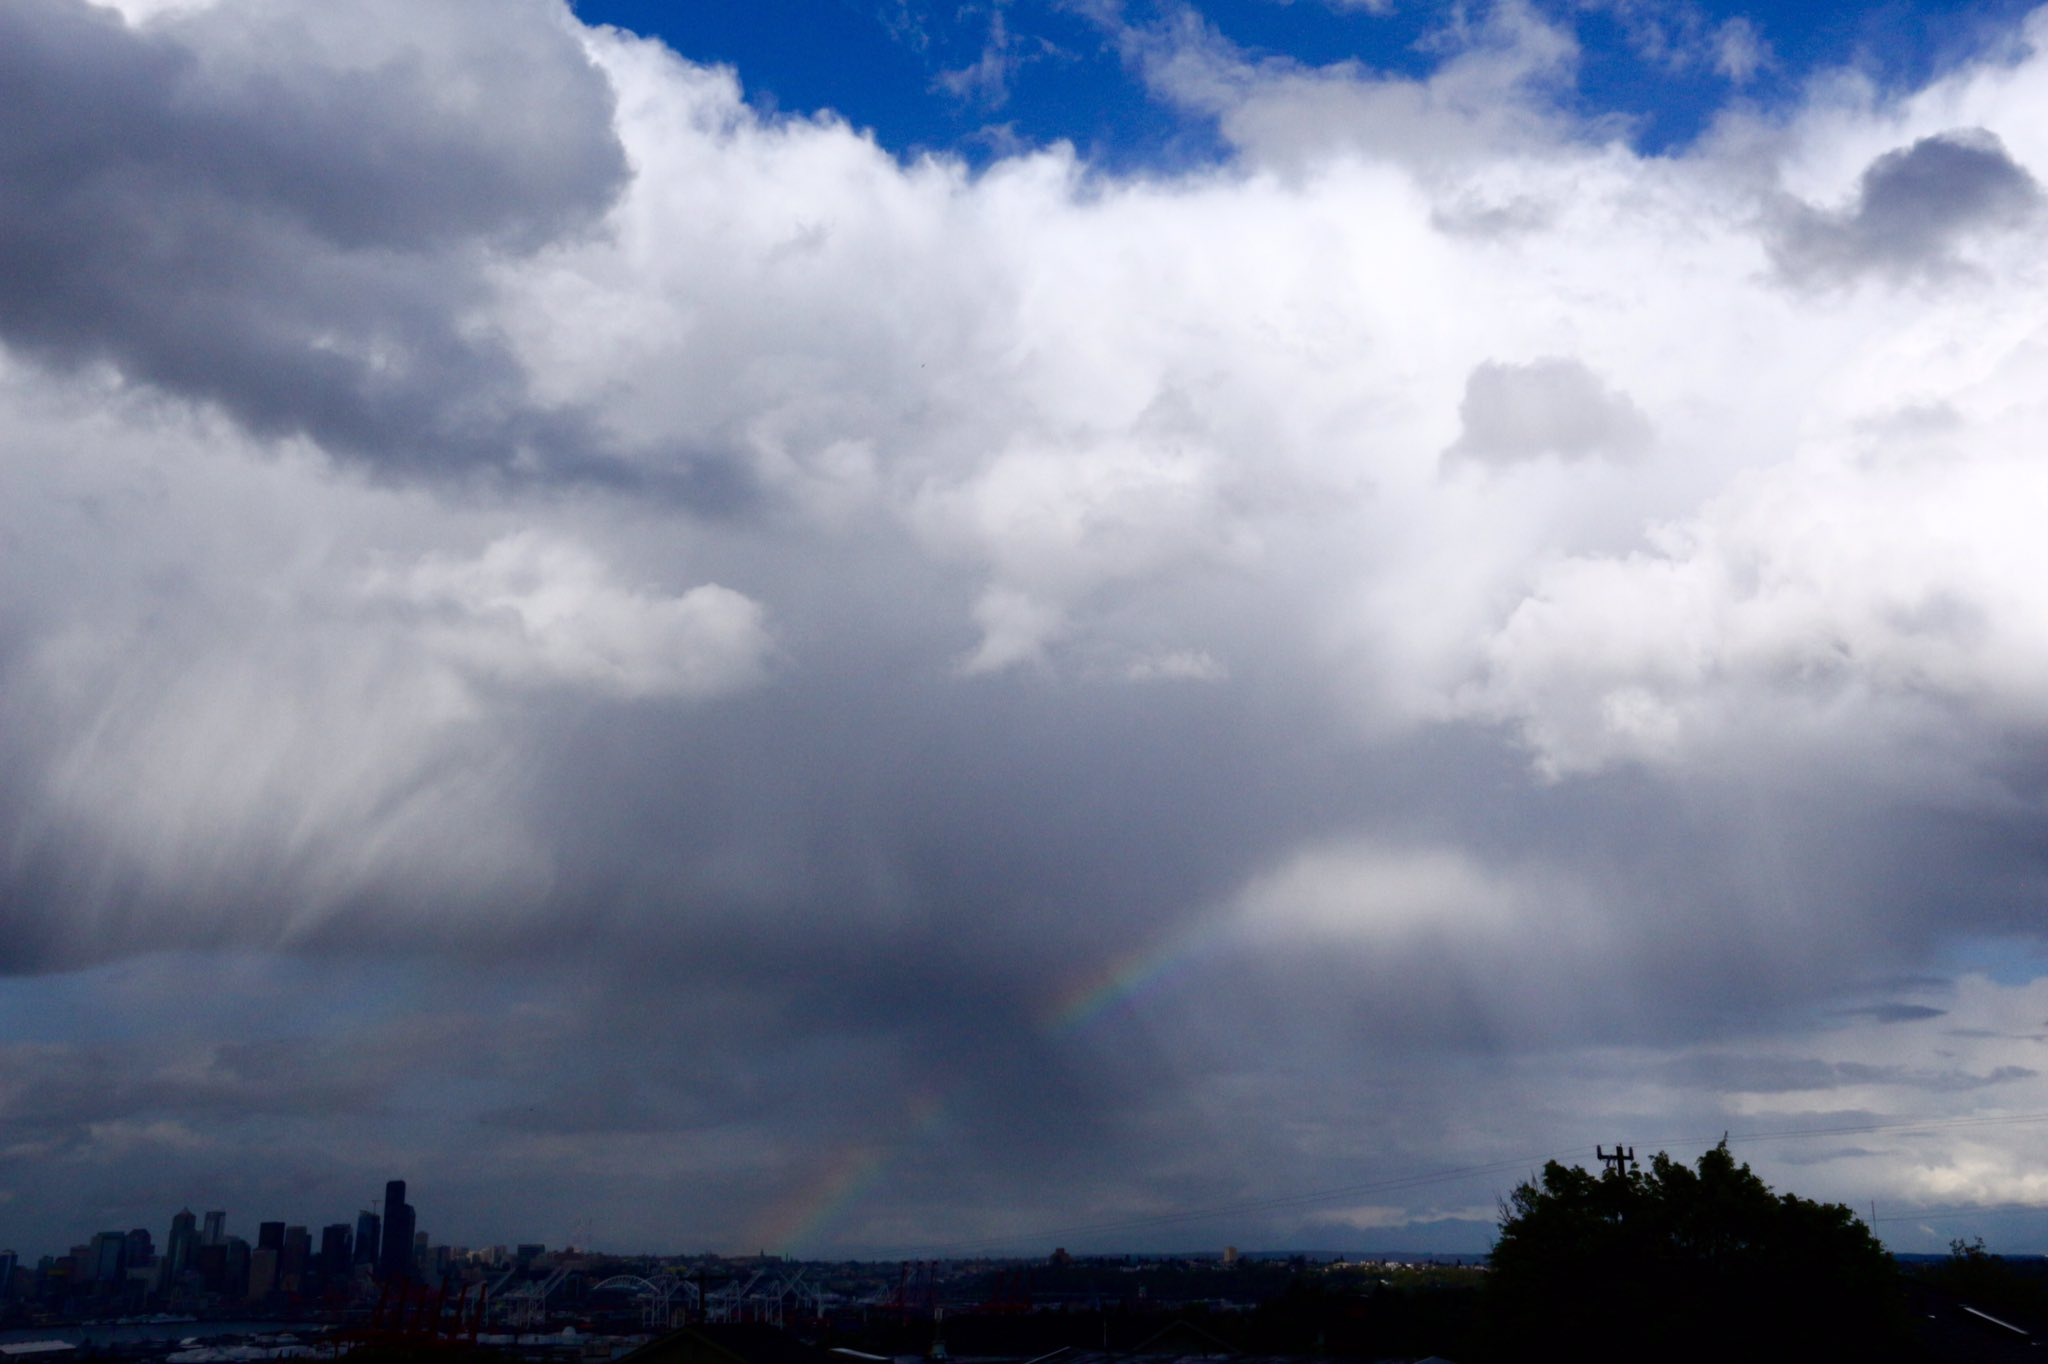 Storm clouds and a rainbow are seen over Seattle, Tuesday, April 18, 2017. (Photo: Kevin Freitas)